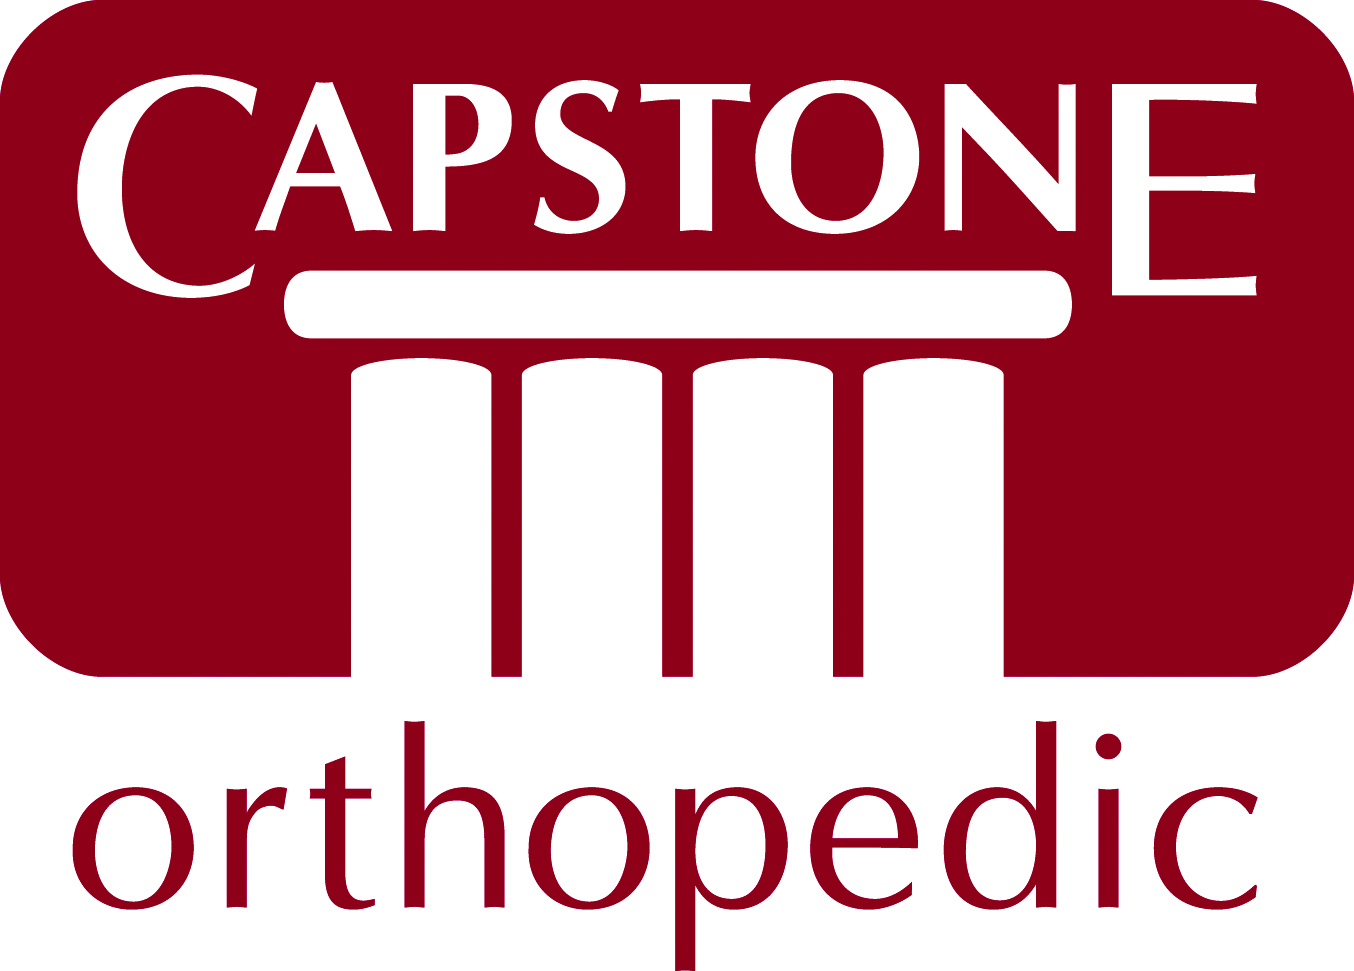 Capstone Orthopedic